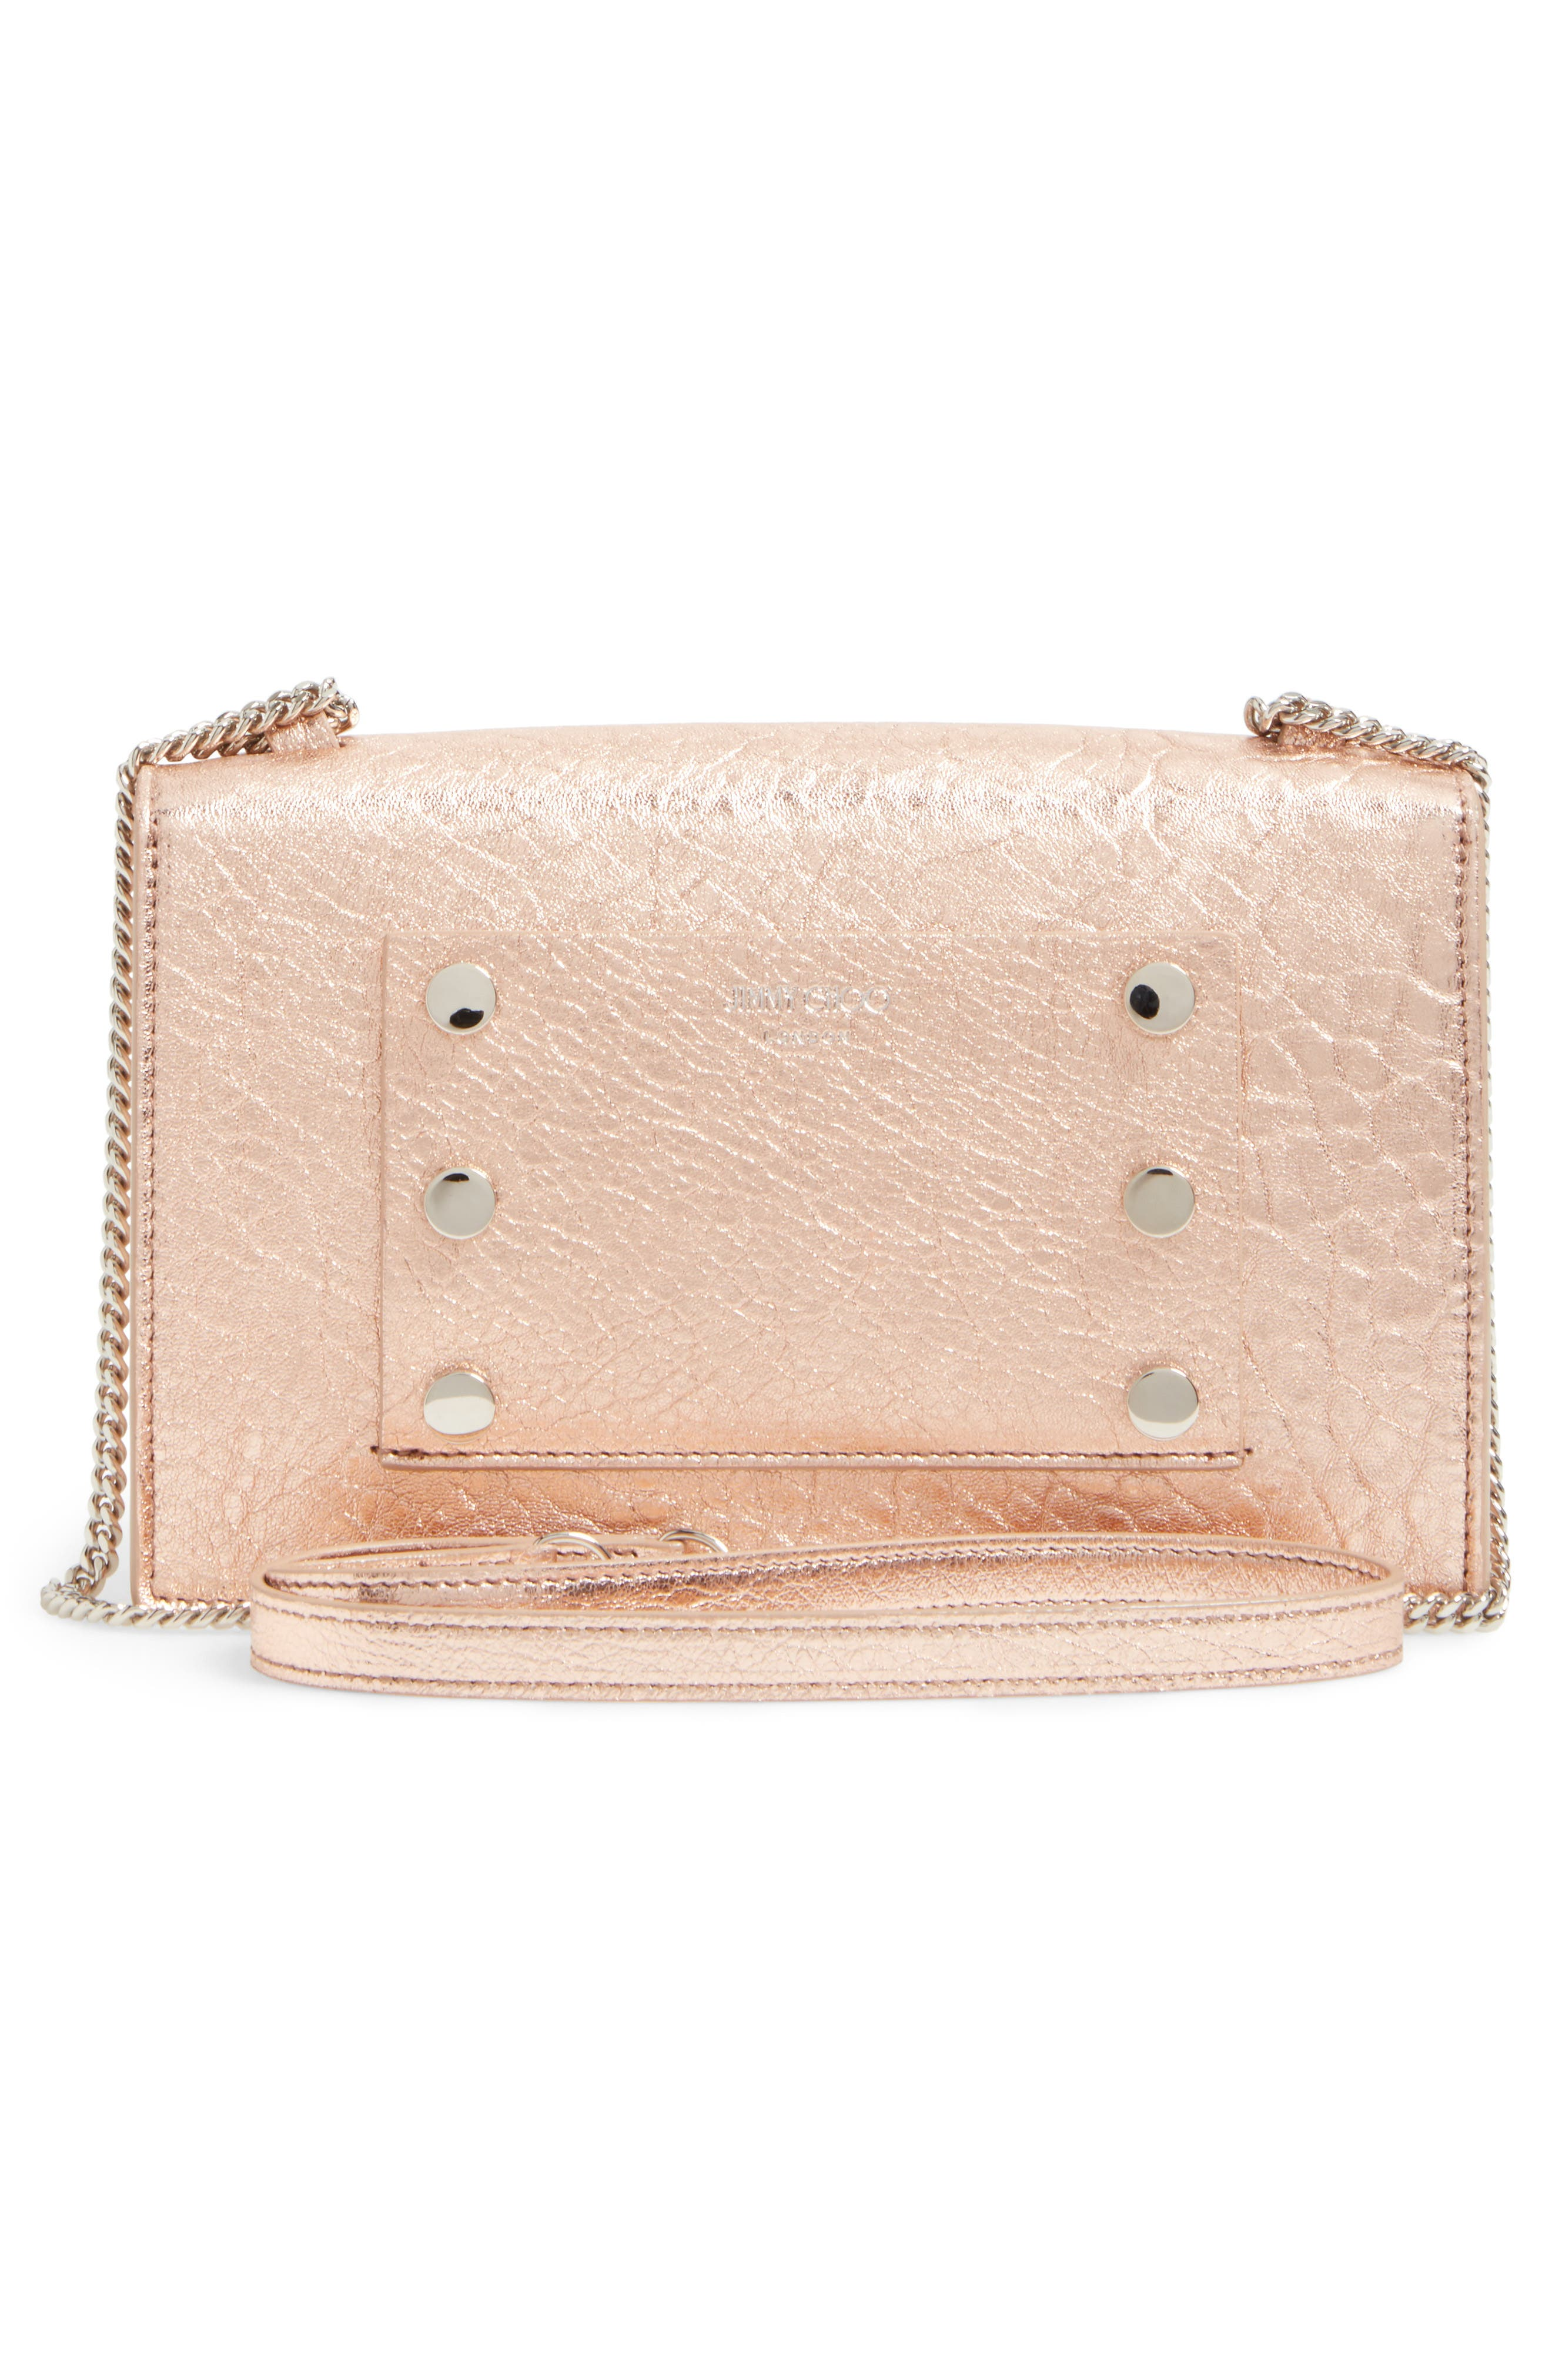 Alternate Image 3  - Jimmy Choo Leila Grainy Lambskin Leather Crossbody Bag